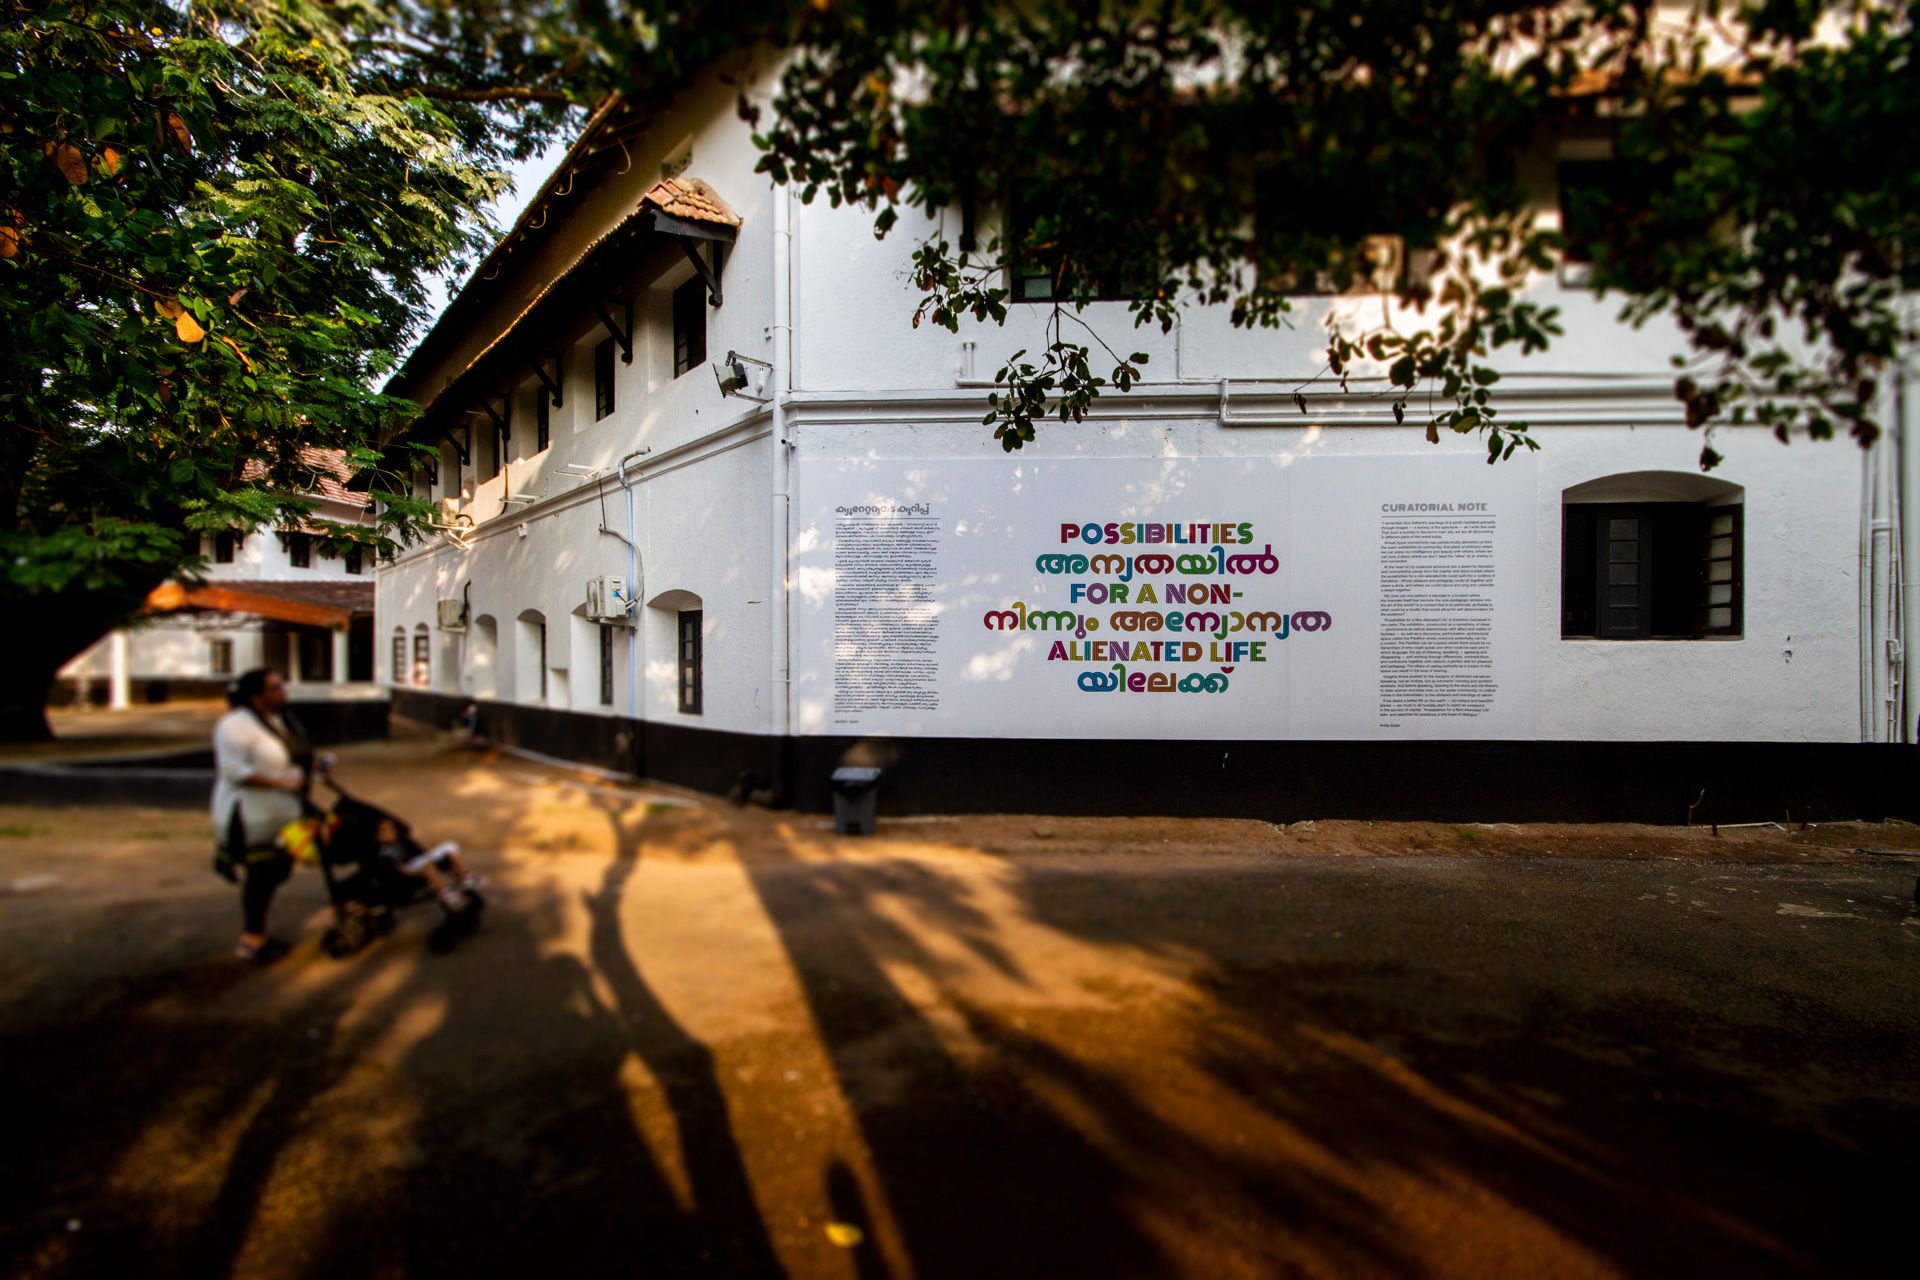 Kochi-Muziris Biennale 2018 - First Impressions Anita Dube, the curator of Kochi Biennale is taking a curatorial adventure to 'liberation and comradeship', between the possibilities for a non-alienated life that could spill into a 'politics of friendship... we must in all humility start to reject an existence in the service of capital' is how the note just about ends.